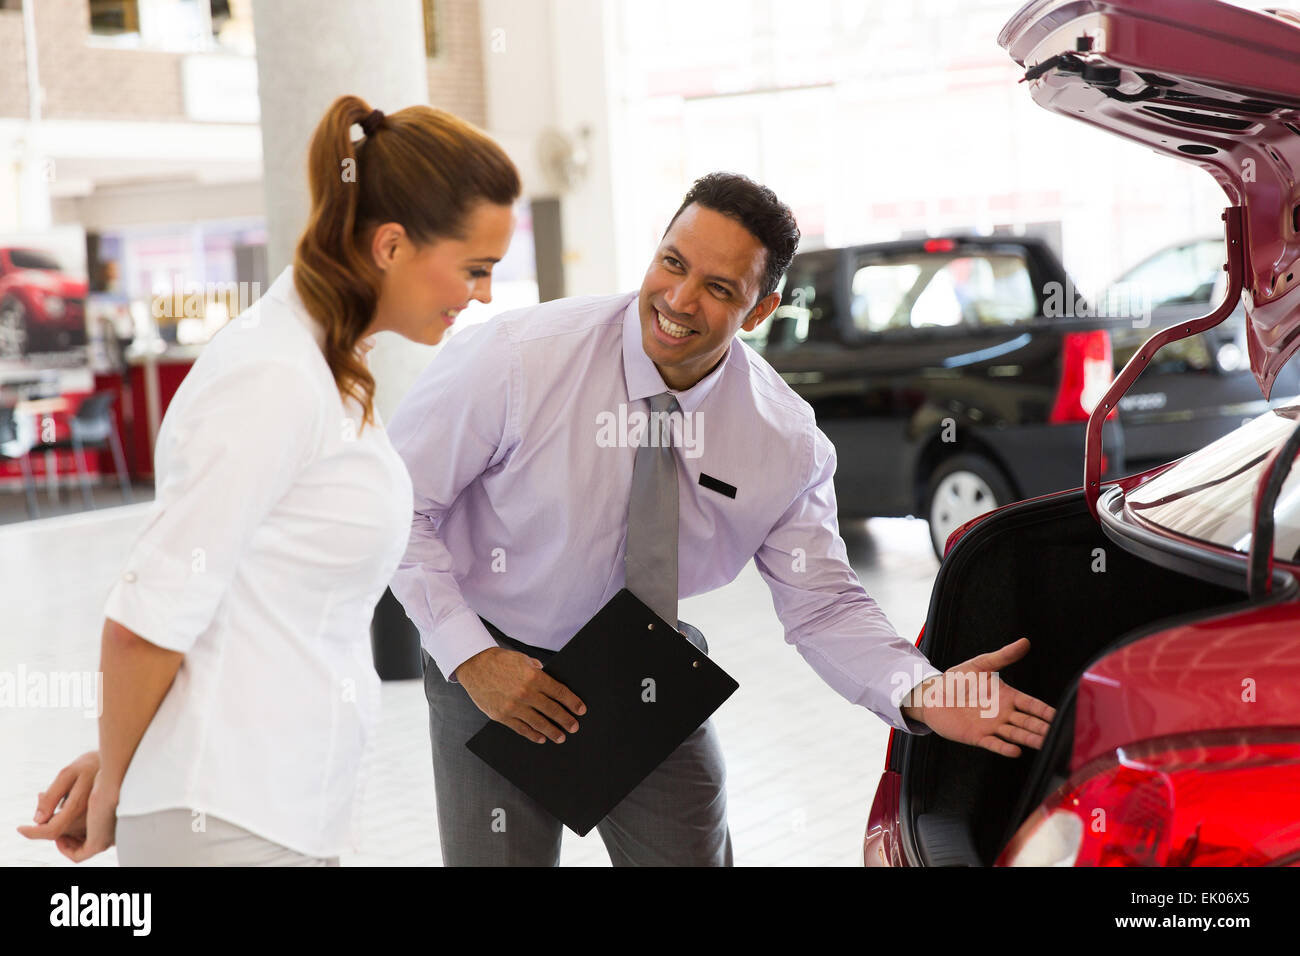 handsome car salesman showing new vehicle to customer - Stock Image